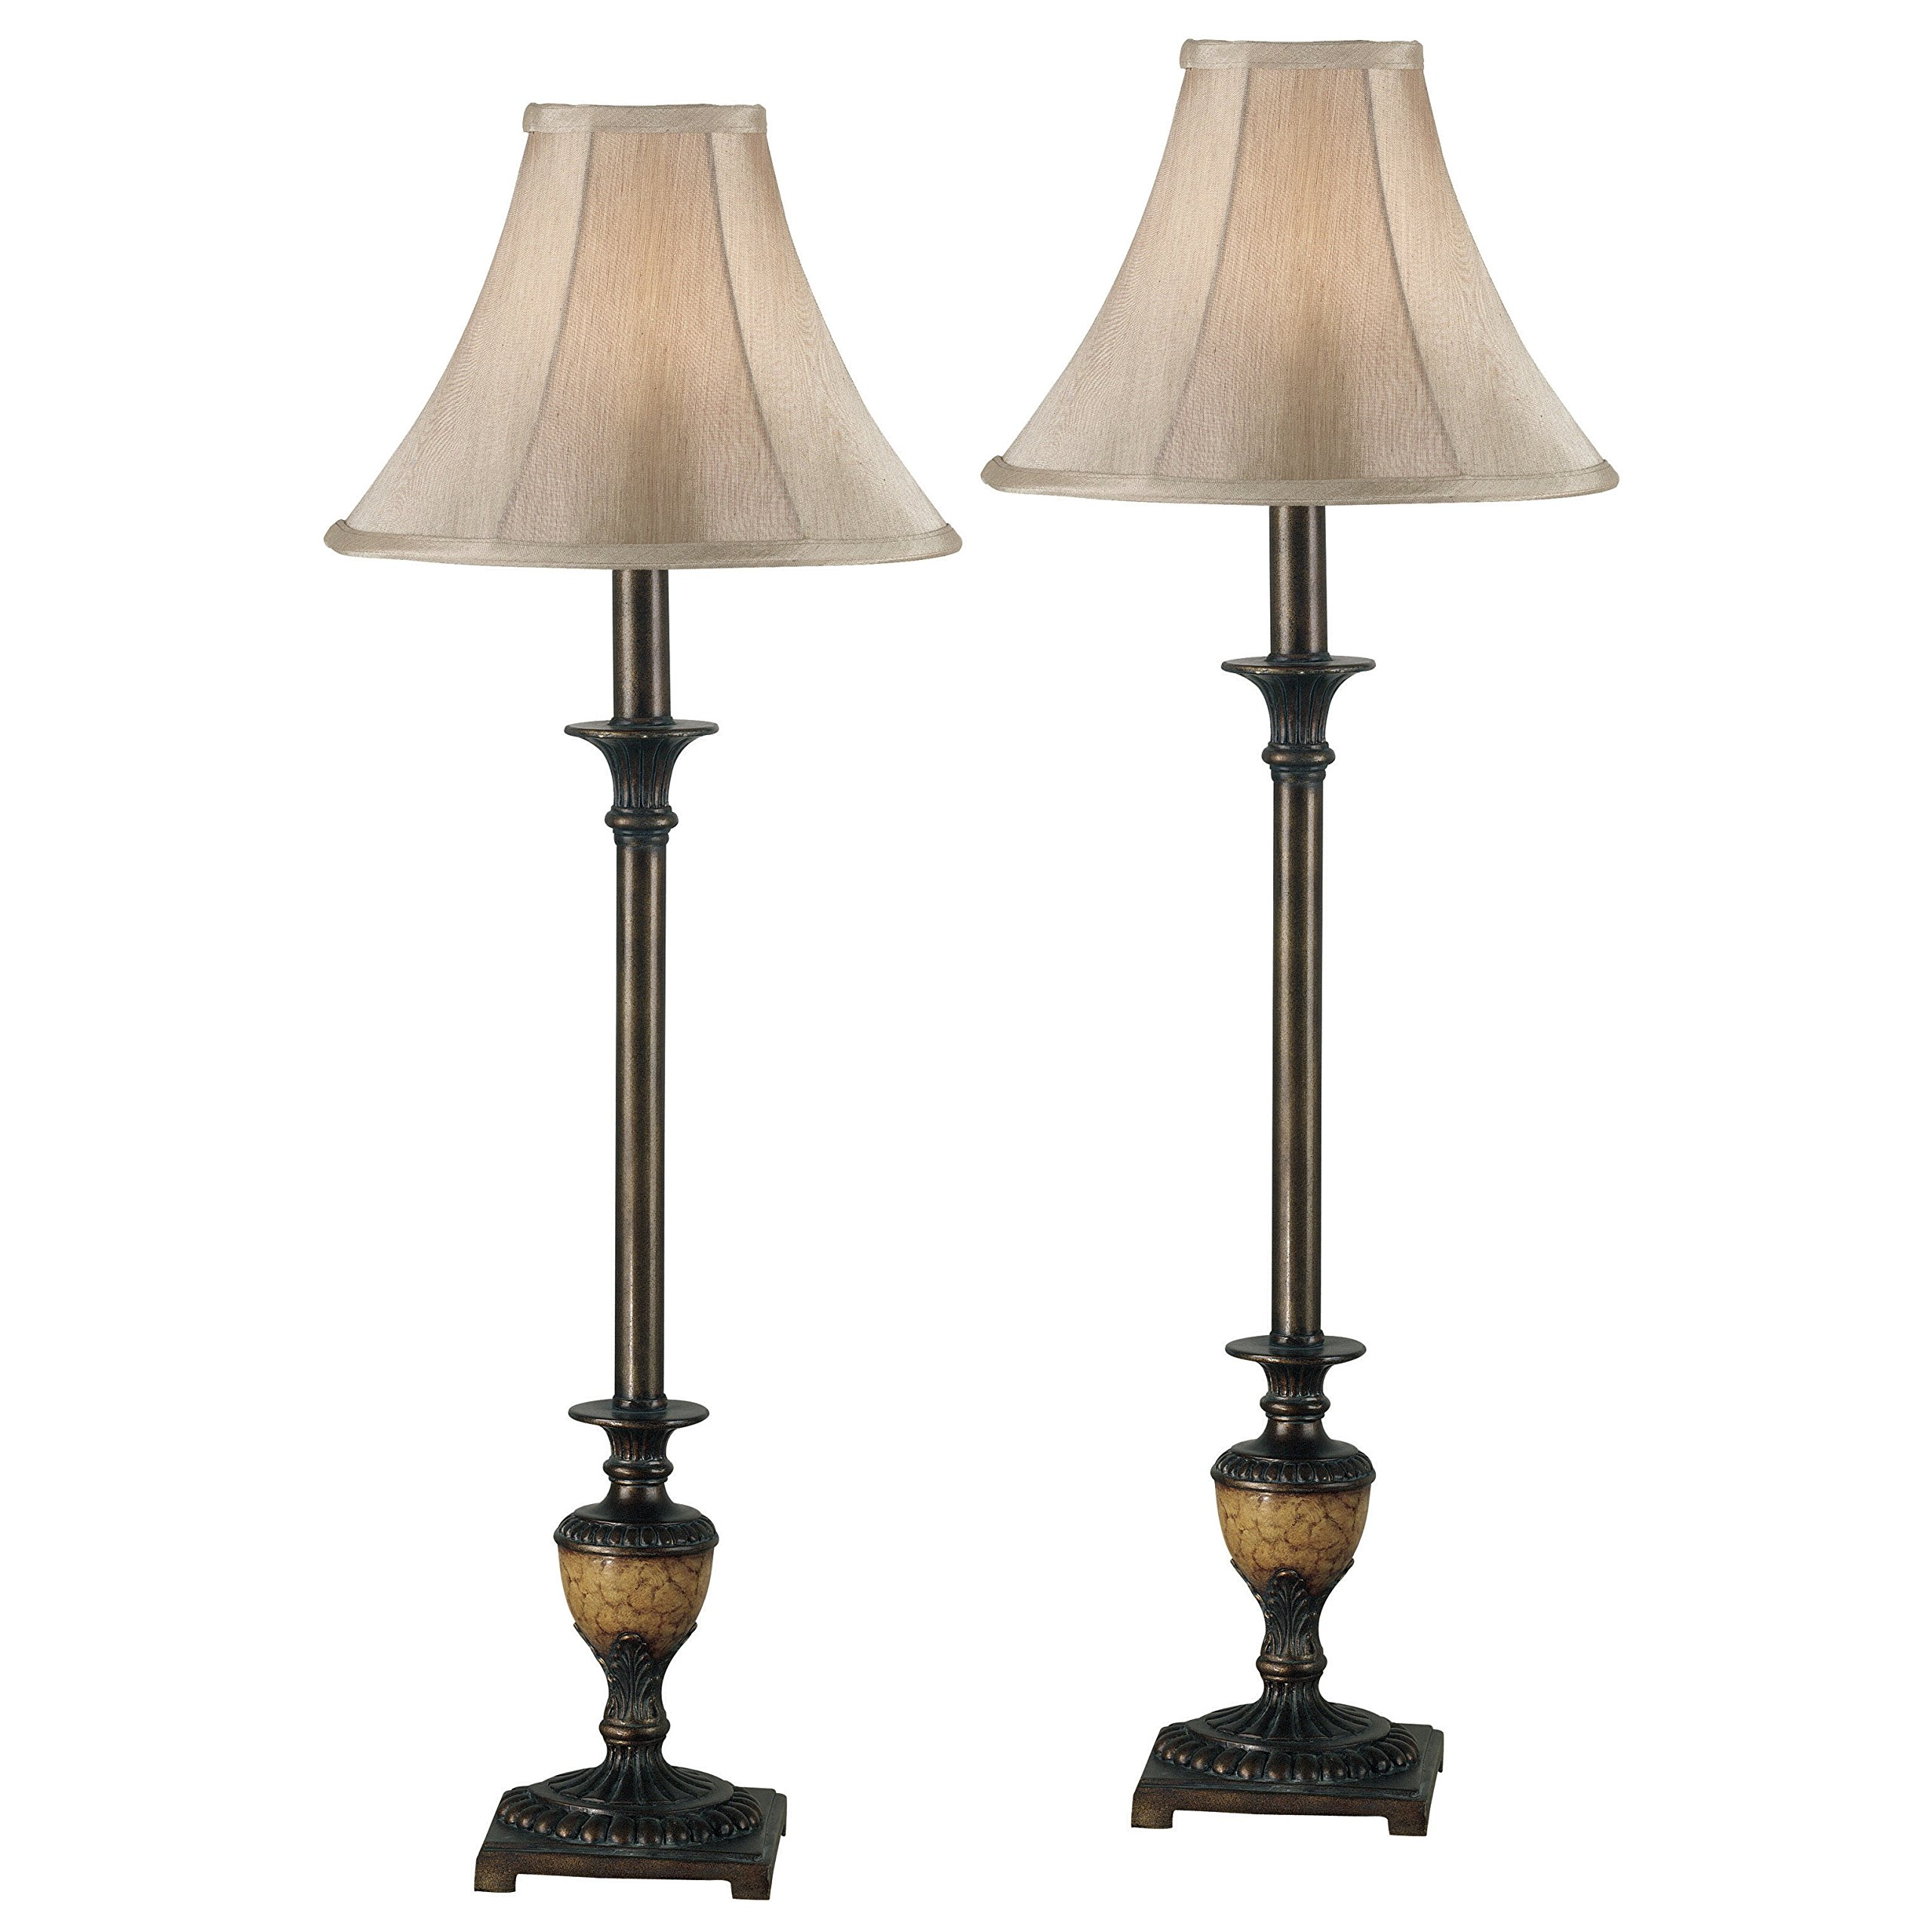 30'' Light Gold Bell Shade Vintage Bronze Painted Buffet Lamps (Set of 2)